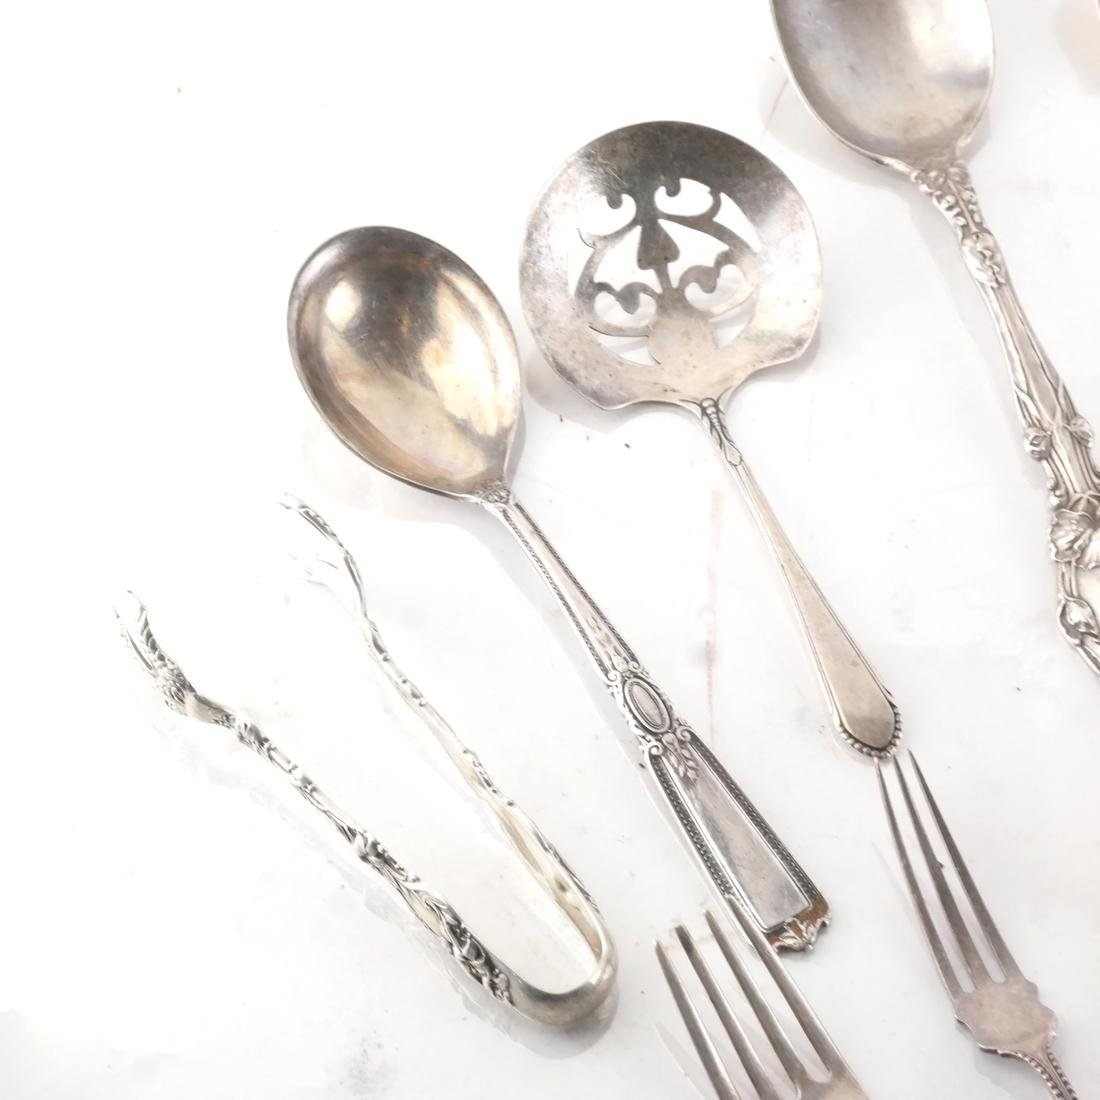 16 Pc. Silver Gorham & Other Tableware - 2